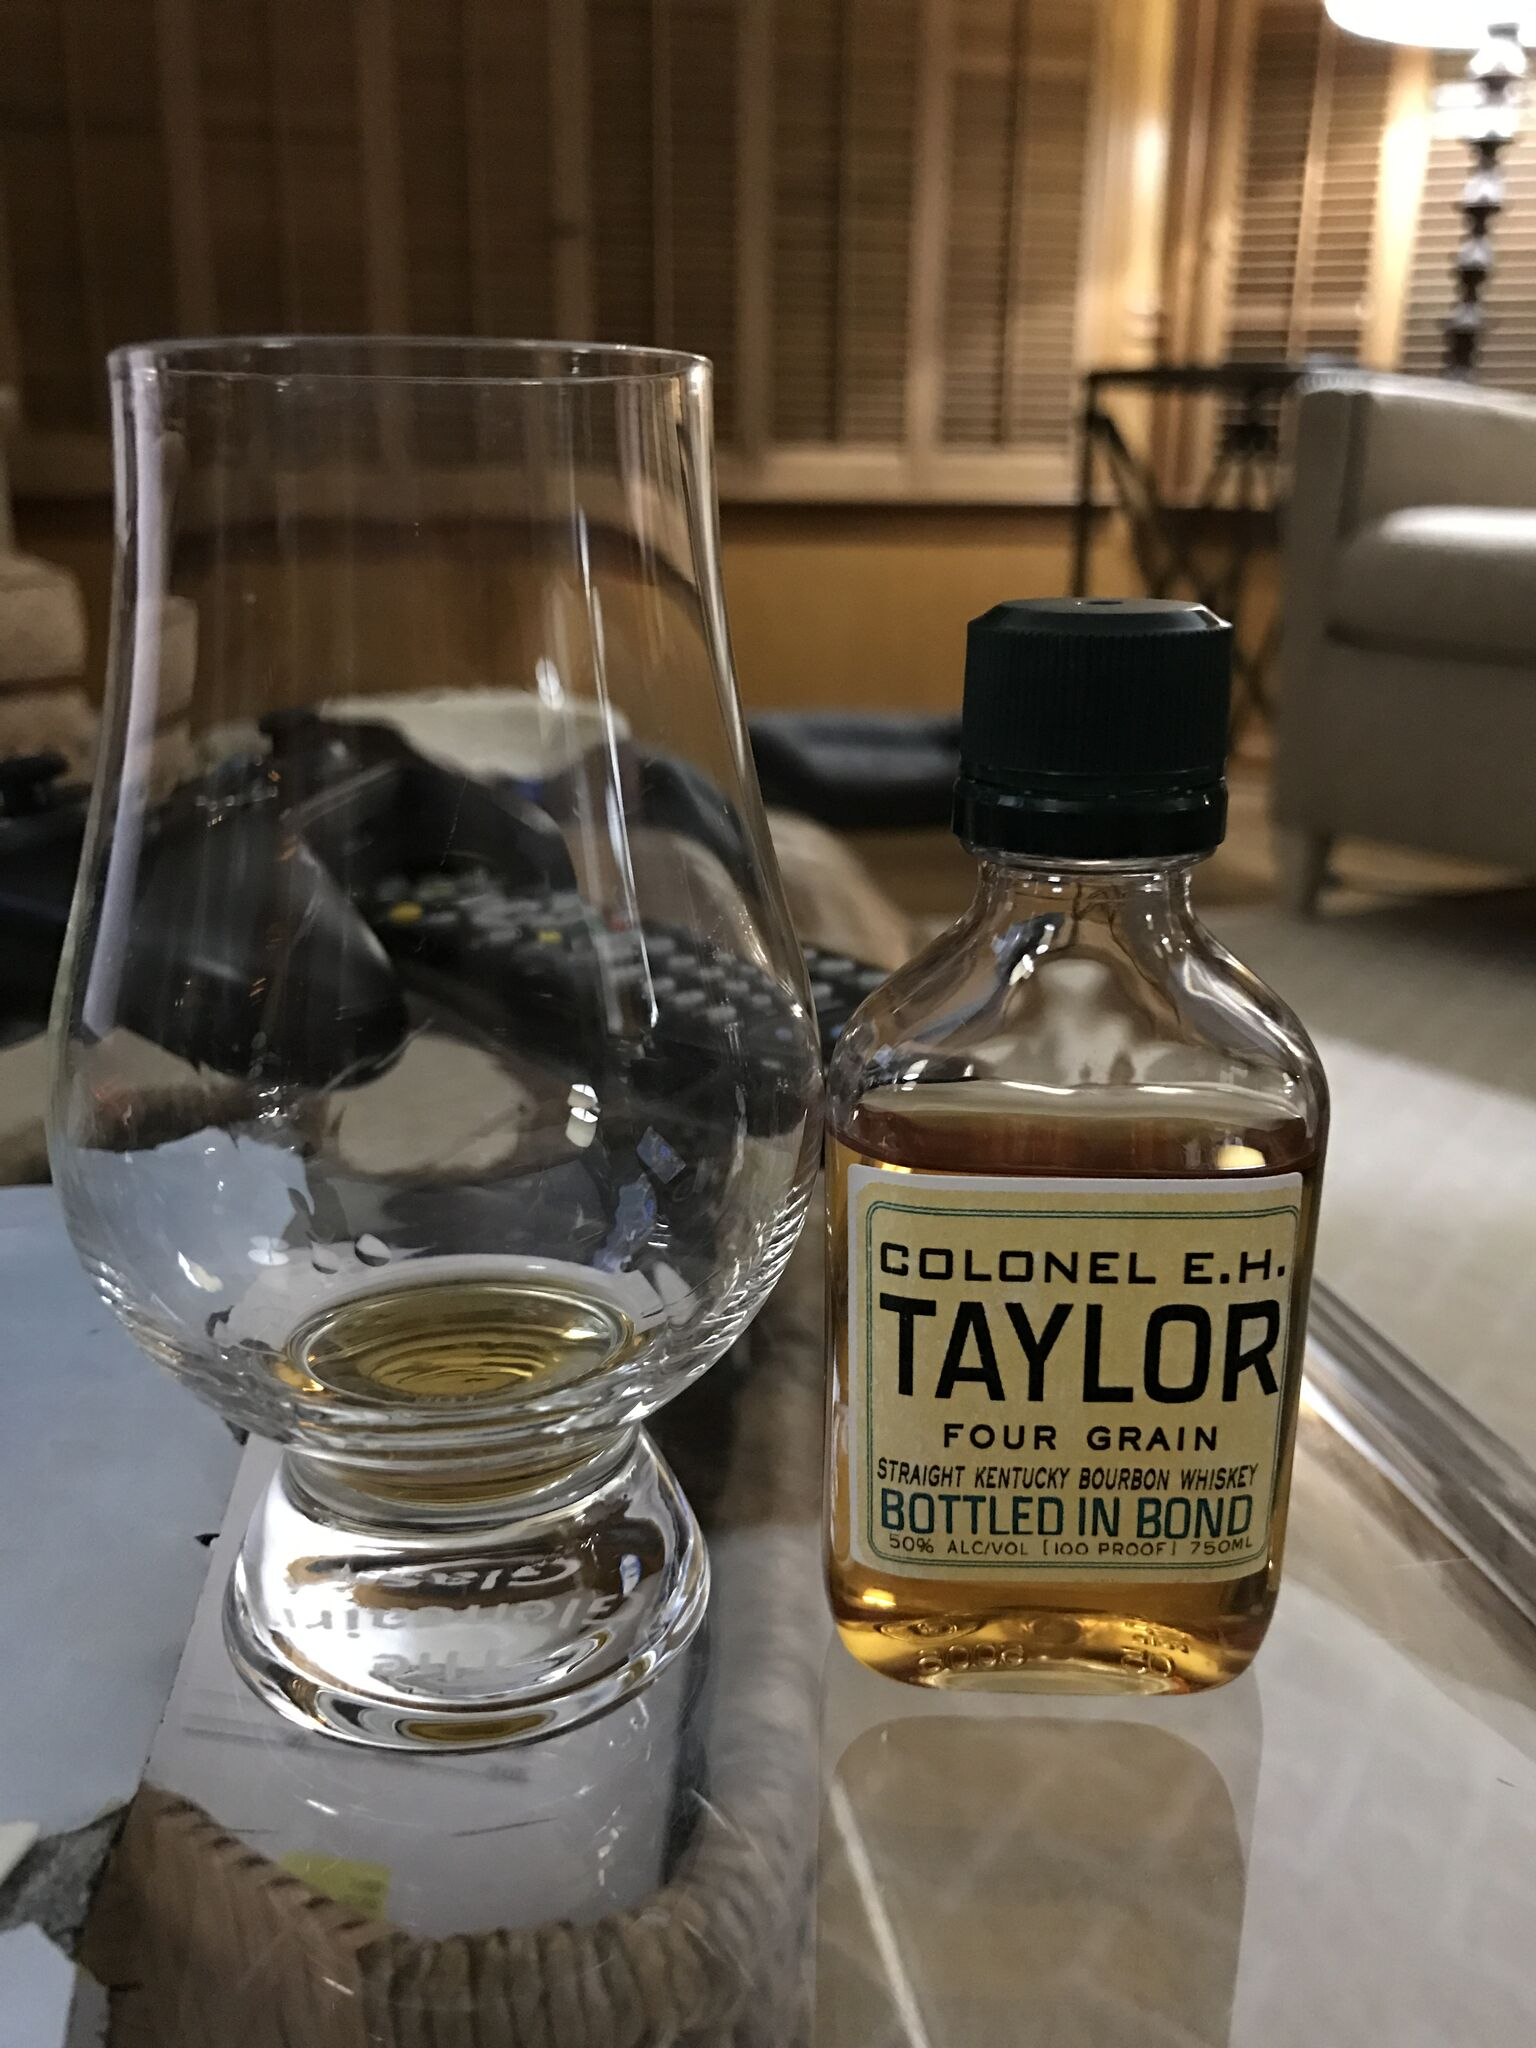 My review of EH Taylor 4 Grain from a thimble.